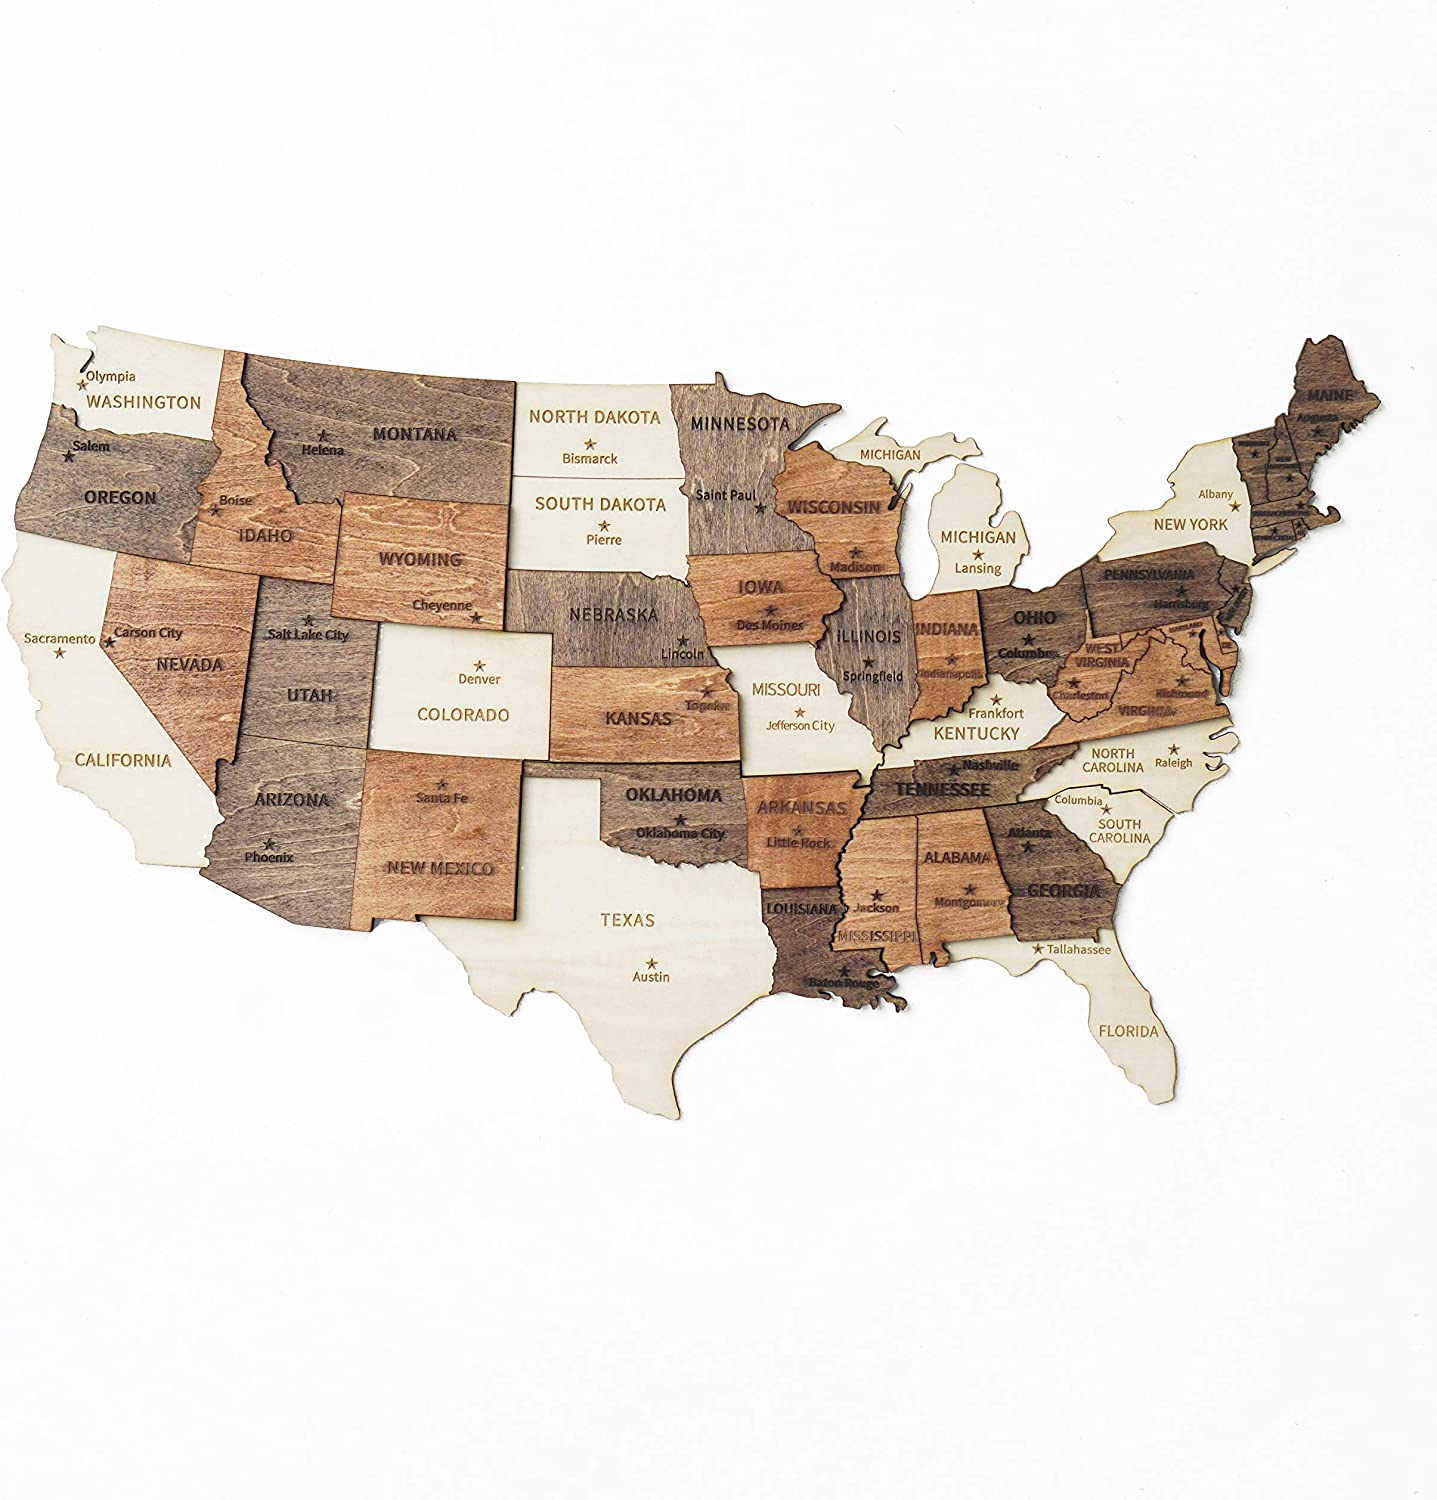 3D Wood Map Of United States, Christmas Gifts, Gifts For Thanksgiving, New Year Decor, Wall Art US Map, United States Travel Map, Office Wall Decor